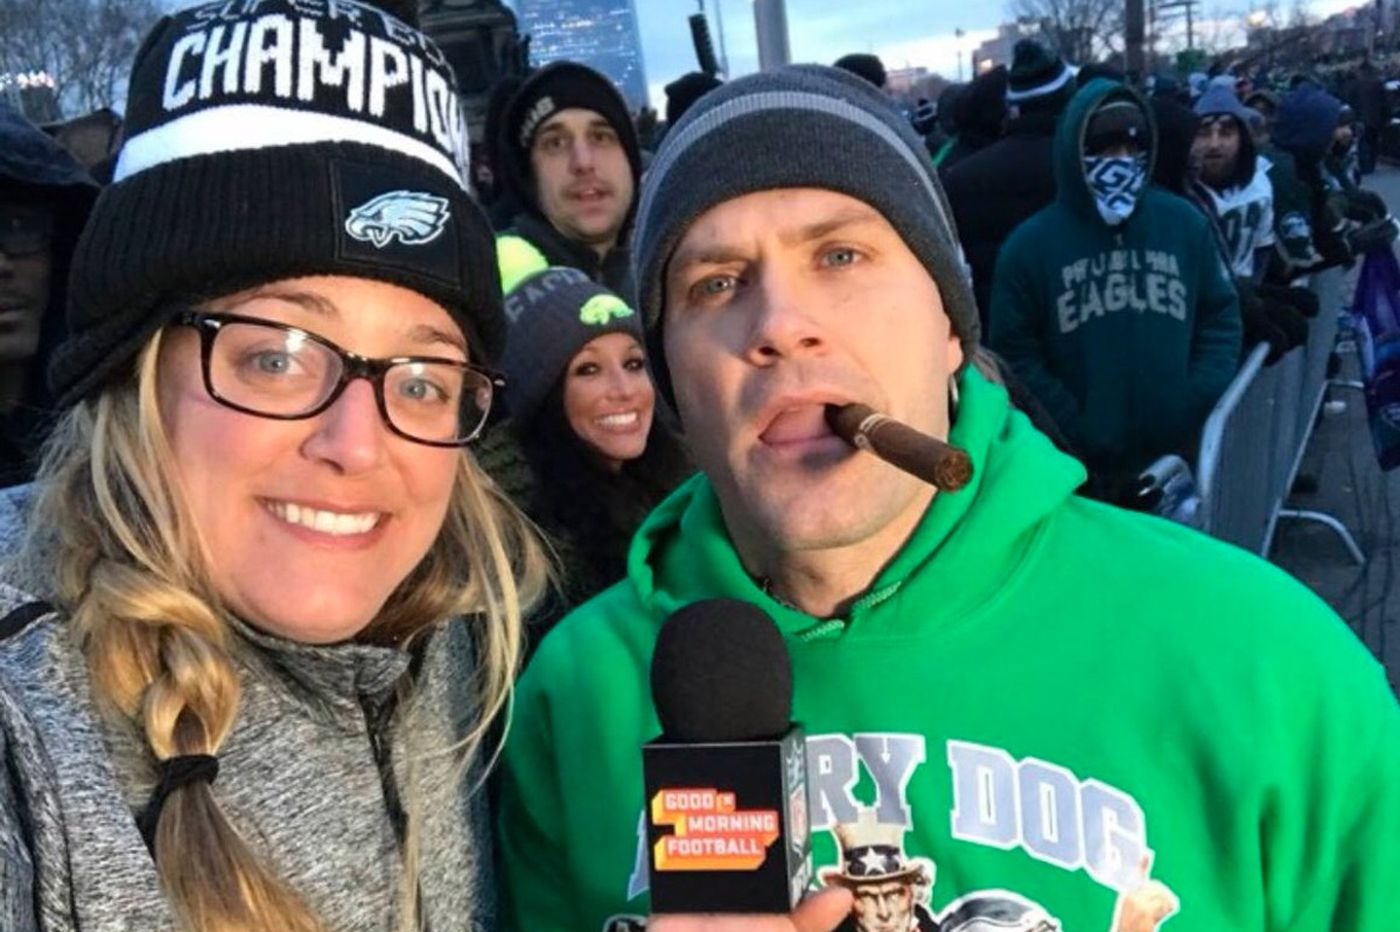 Eagles super fan Kyle Brandt launching a new NFL Network show, and it sounds bonkers